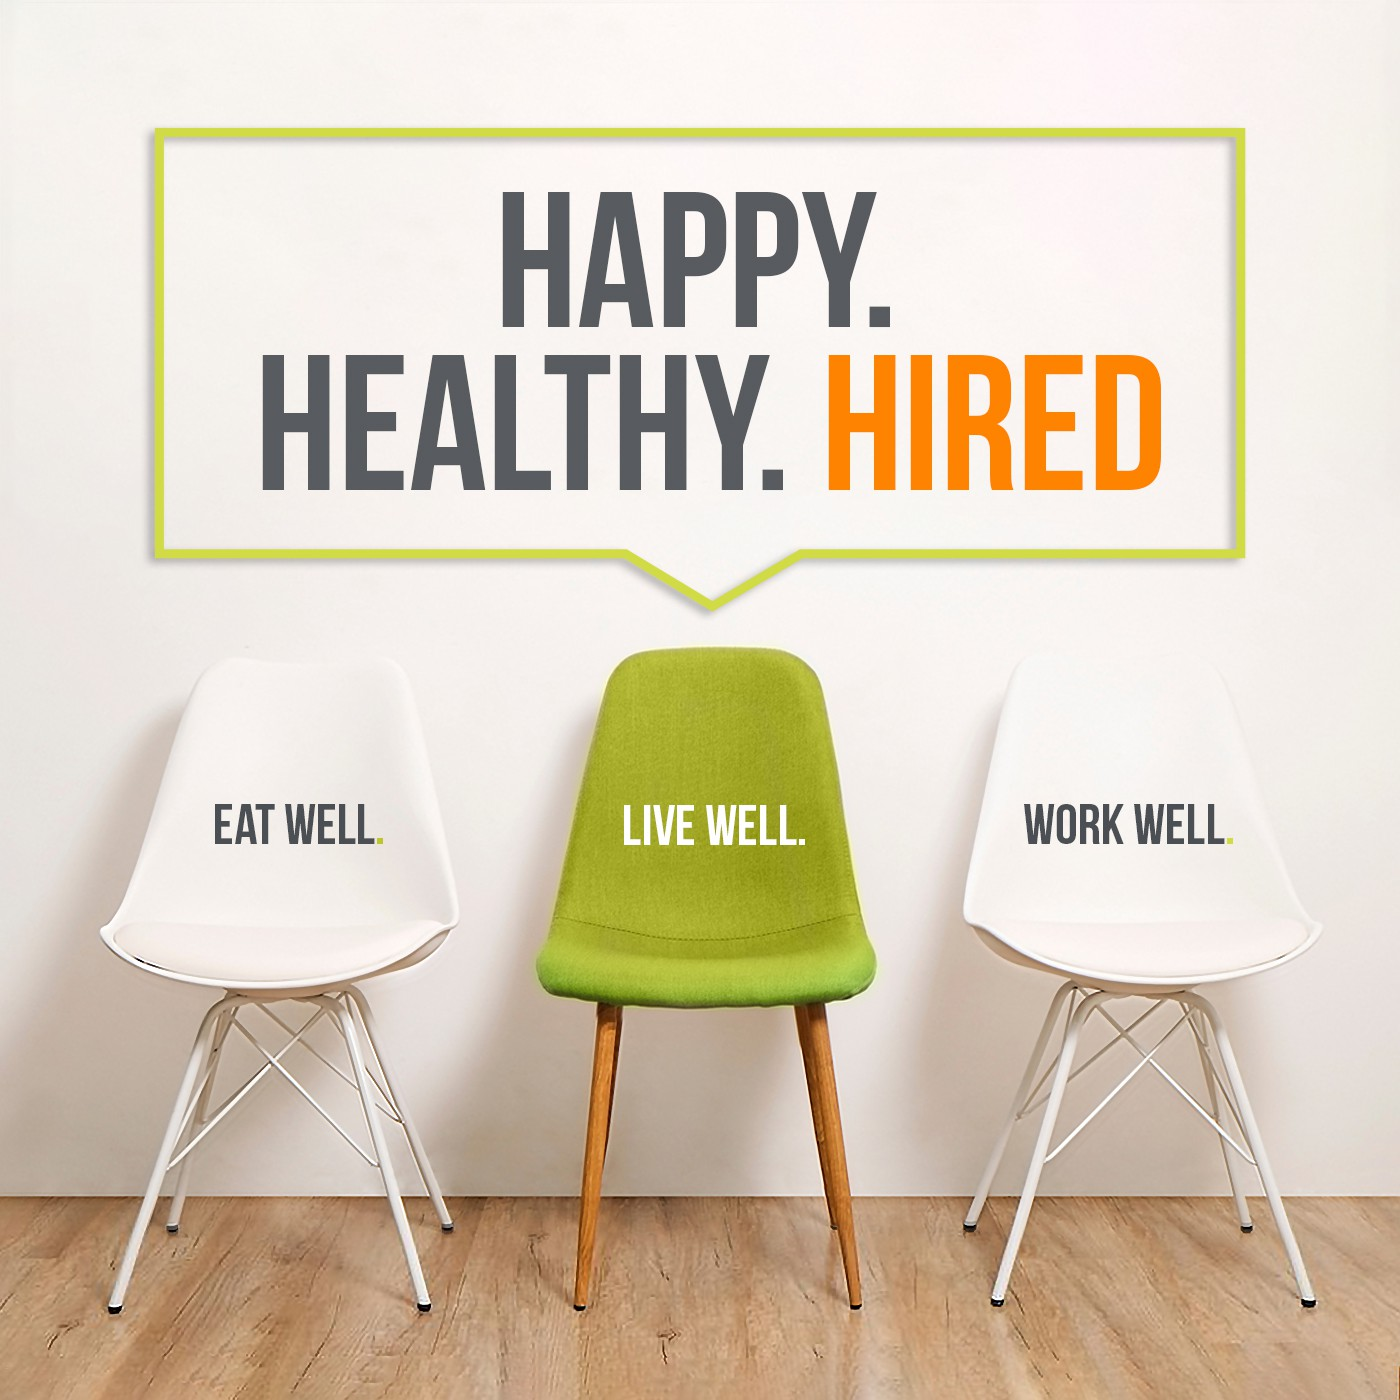 Holistic health for the busy professional looking to land the perfect job podcast art